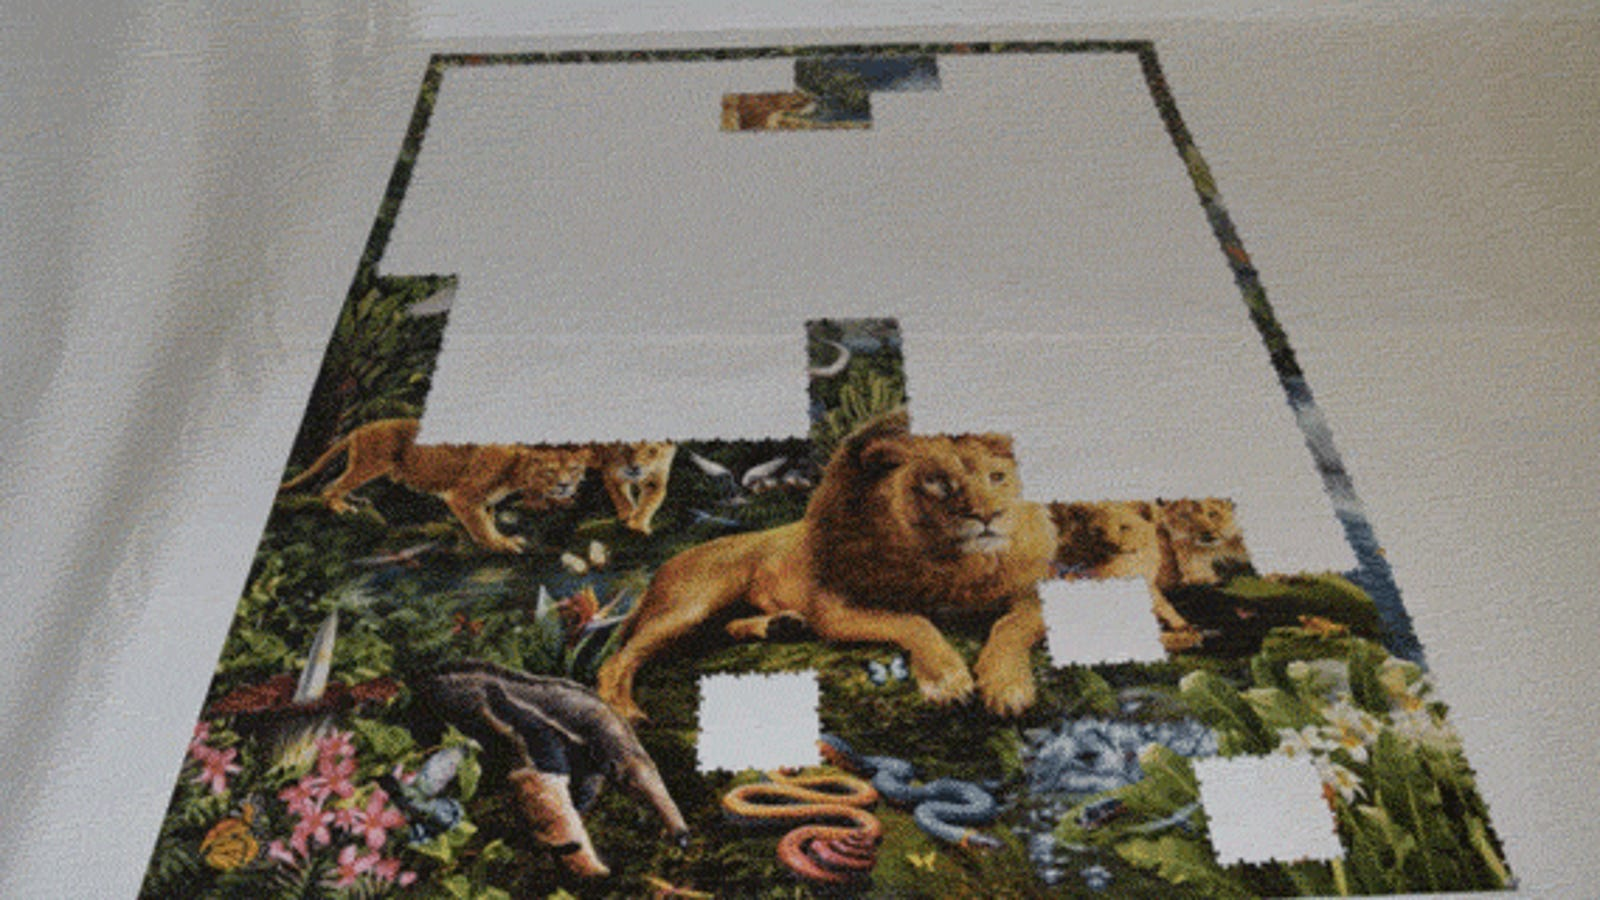 One of the Largest Jigsaw Puzzles in the World Made Harder